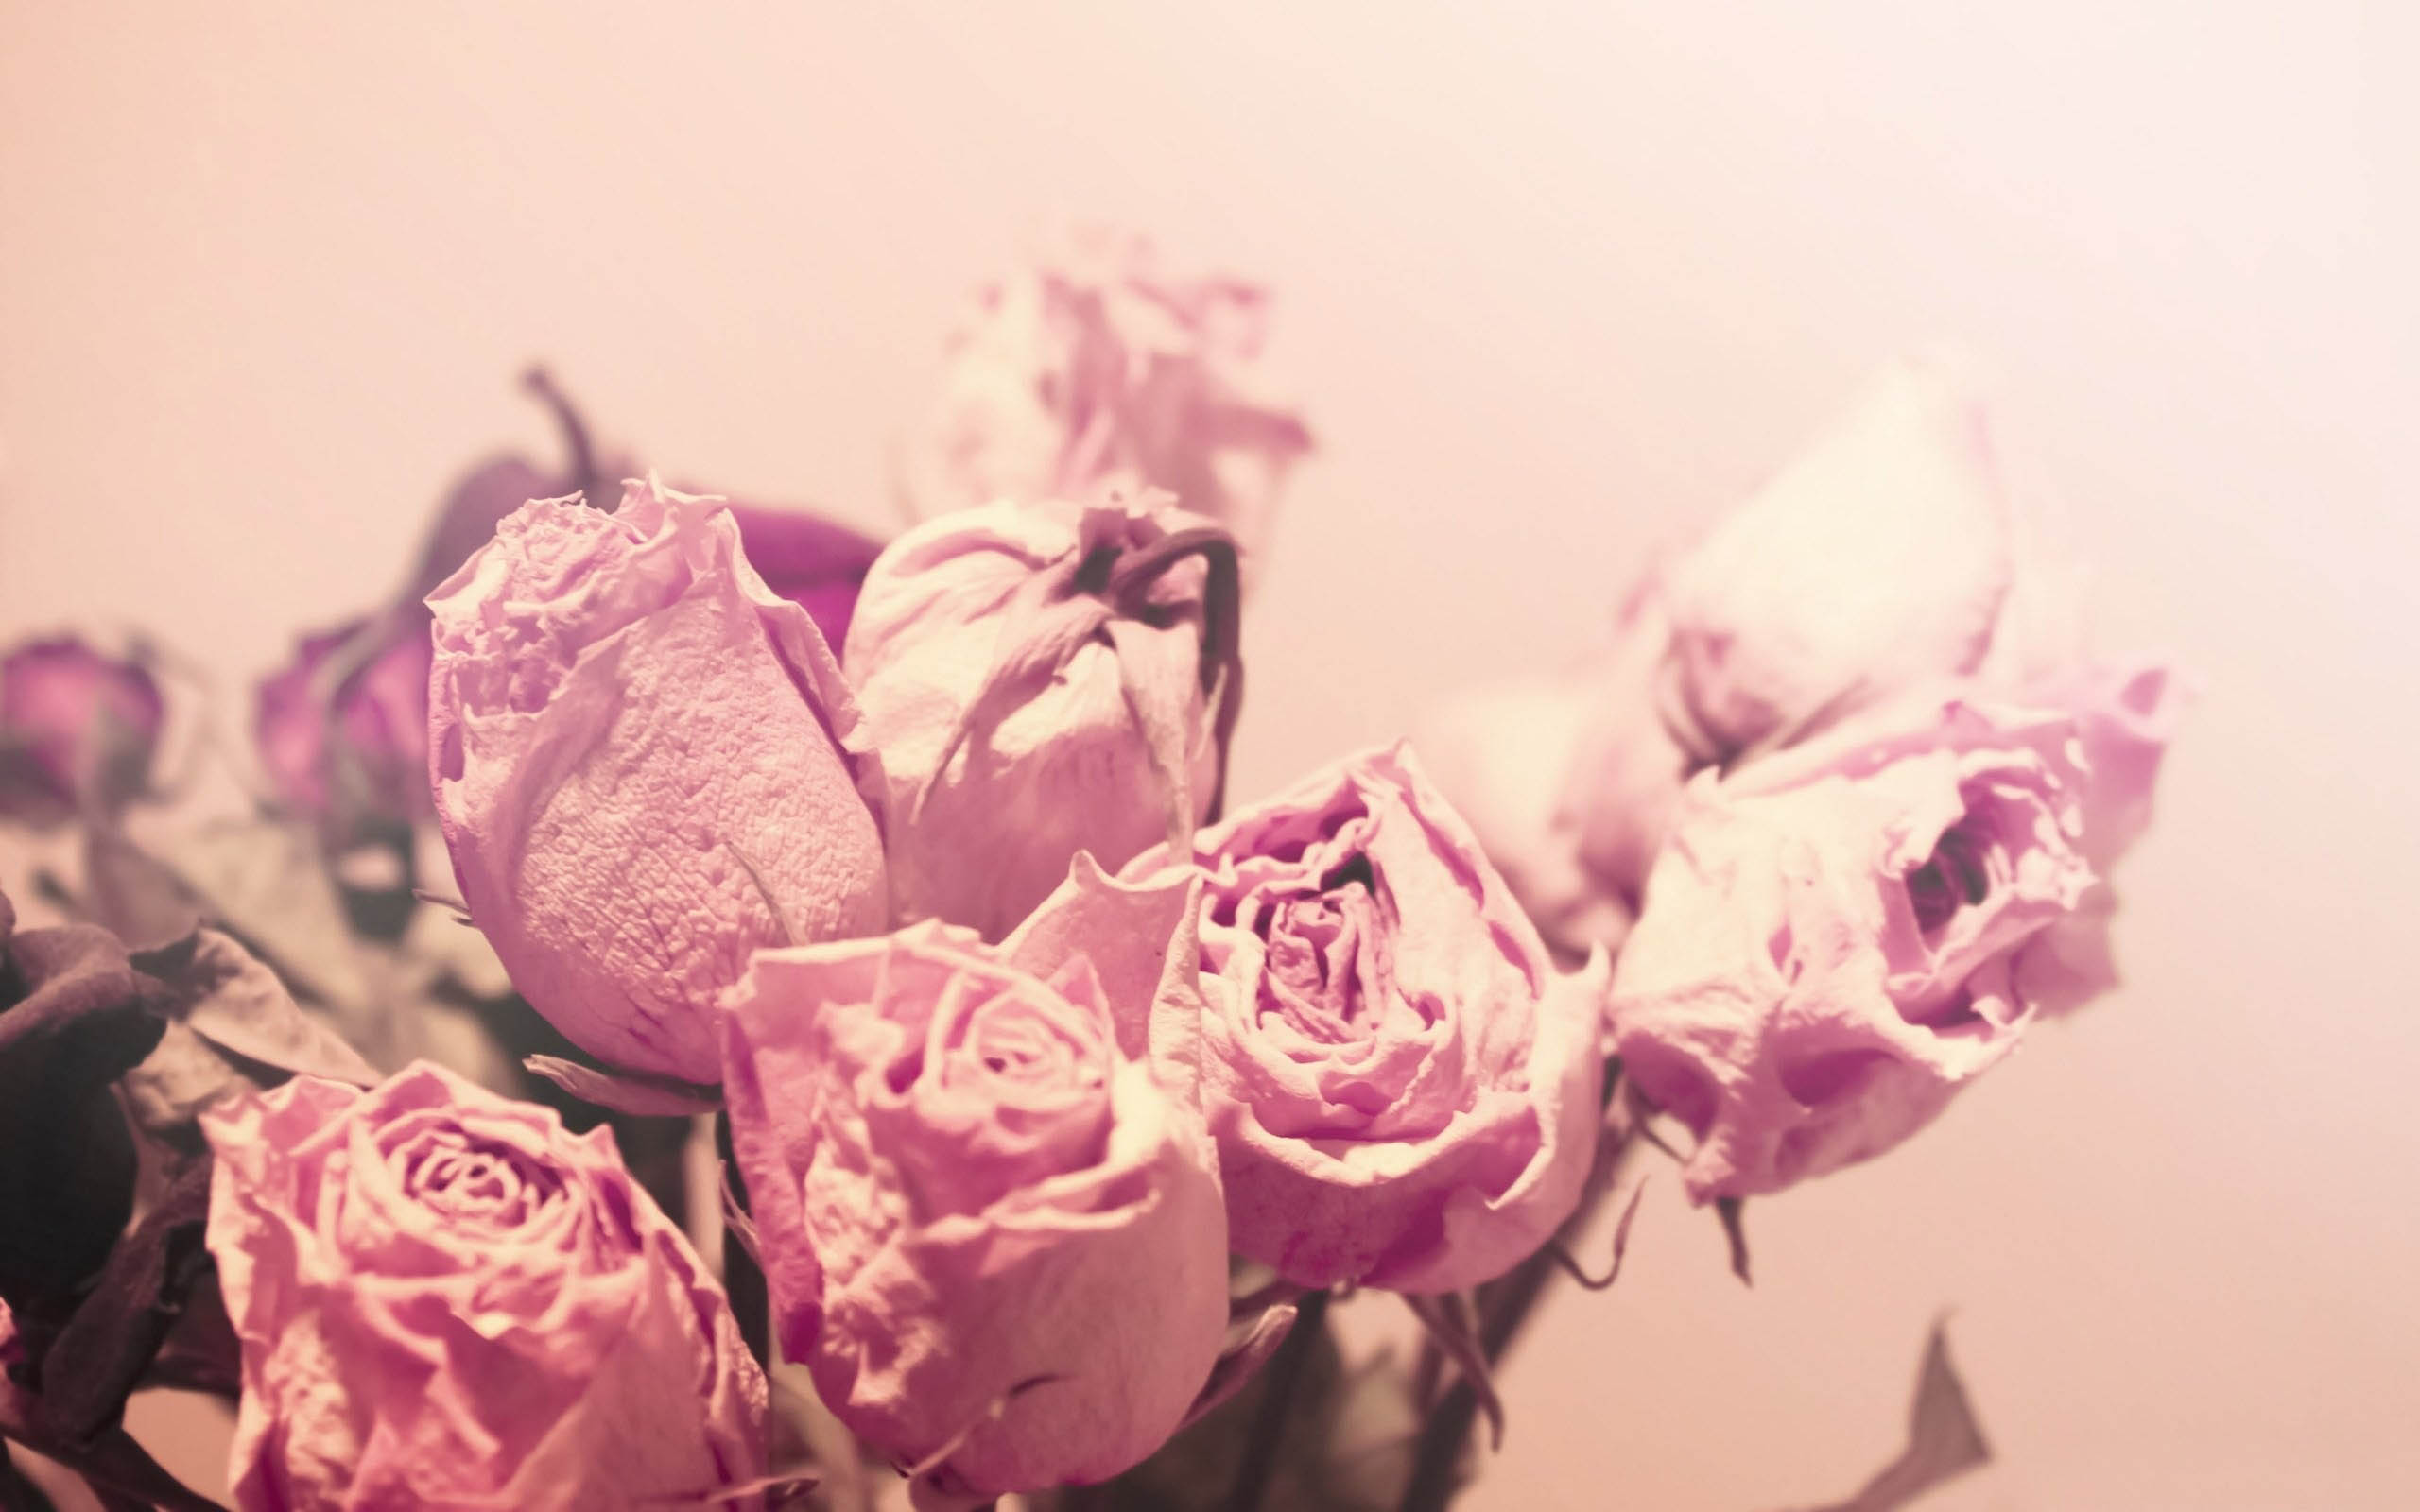 Pink Roses Tumblr Photography Wallpapers 2560x1600